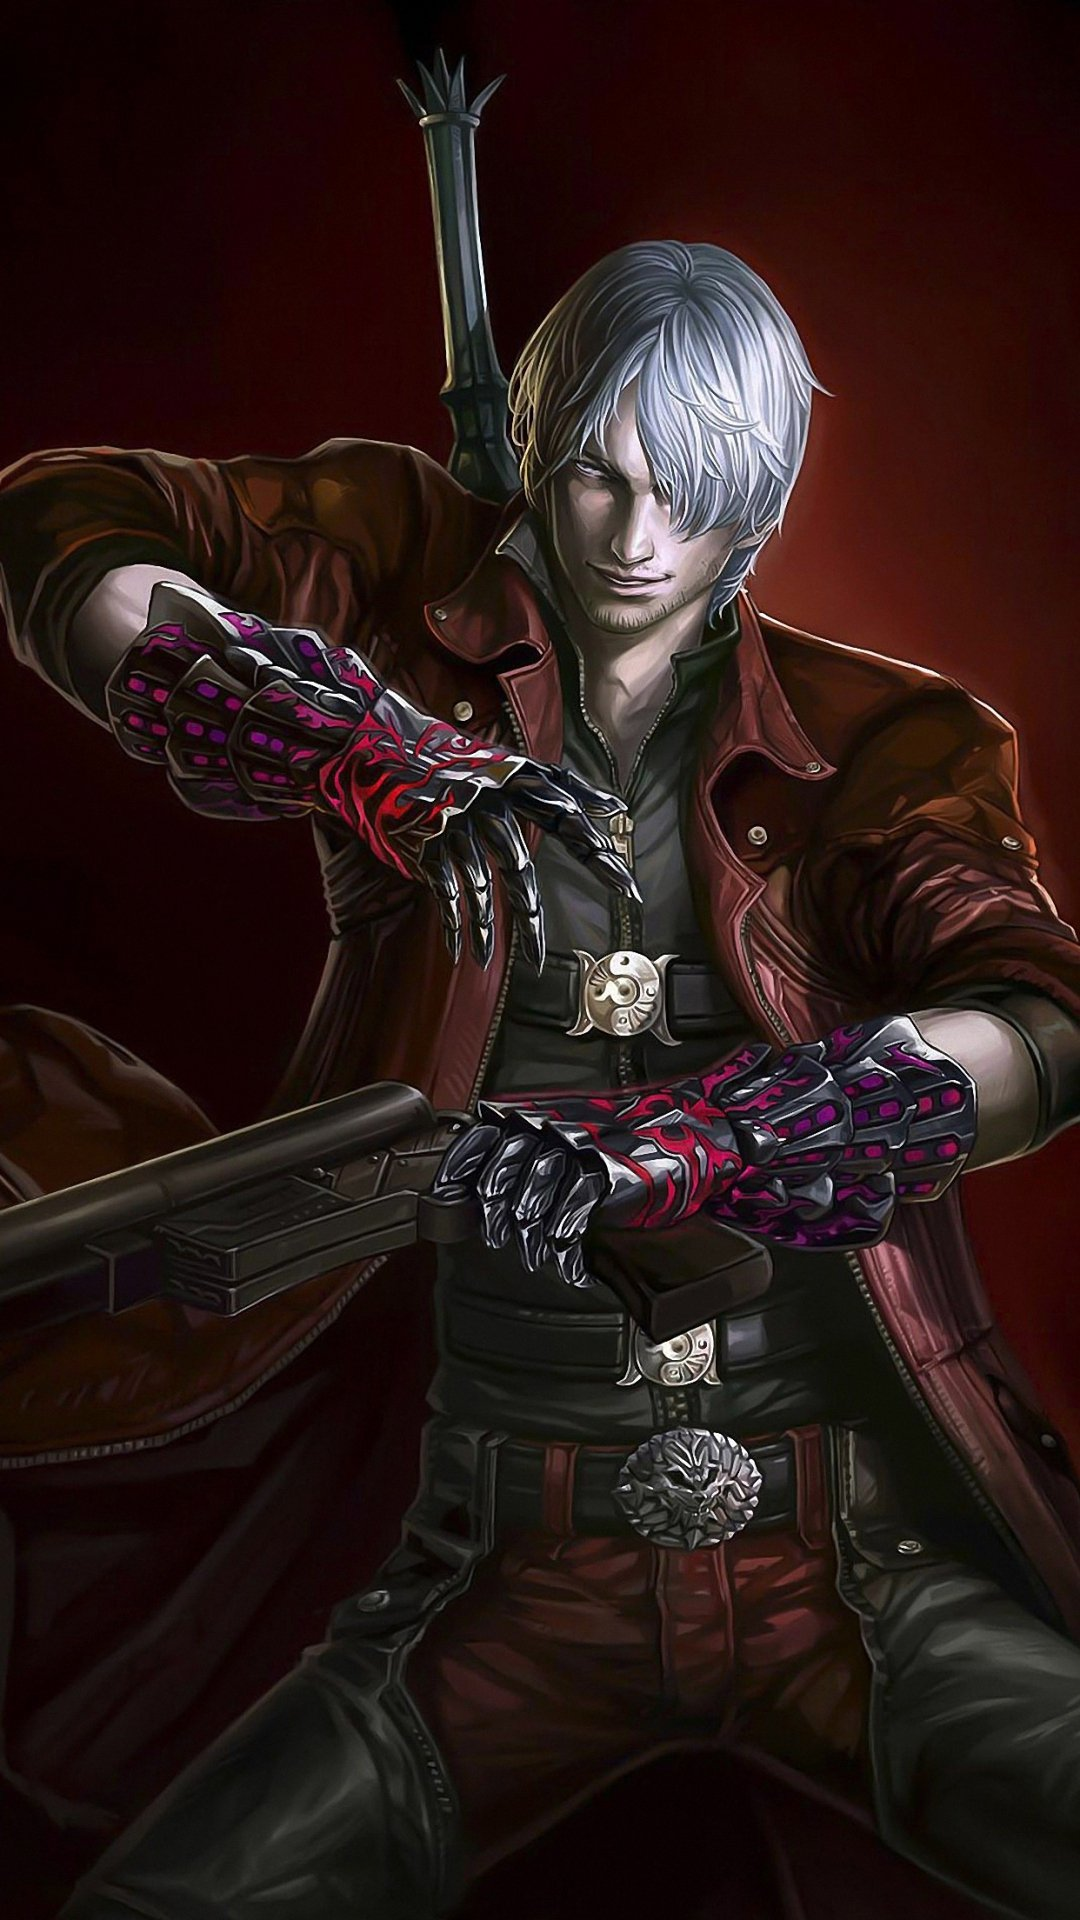 Free Download Devil May Cry Iphone 6s Wallpapers Hd 1080x1920